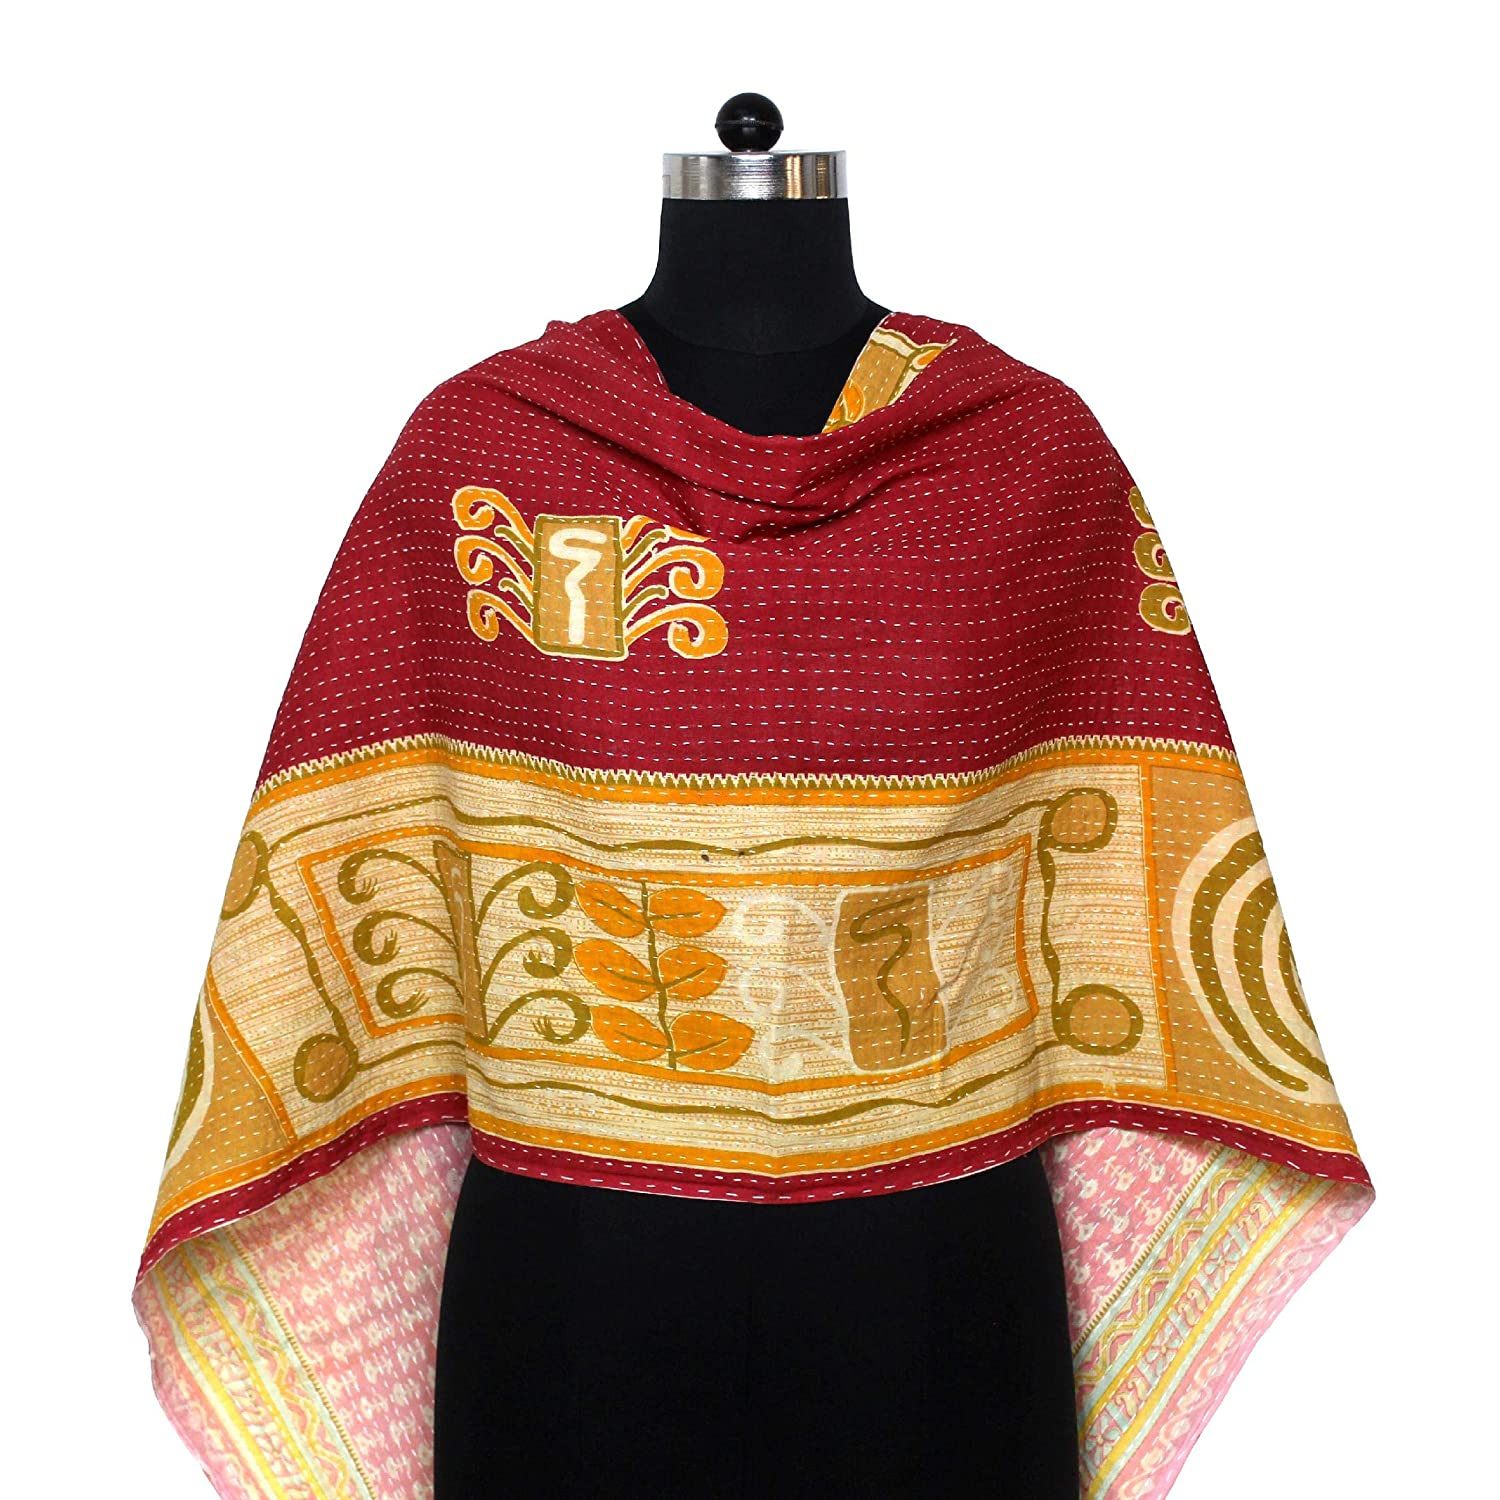 Cotton Kantha Scarf Vintage Max 61% OFF Neck Dupatta Ranking TOP12 Quilted Wrap Stole Hand